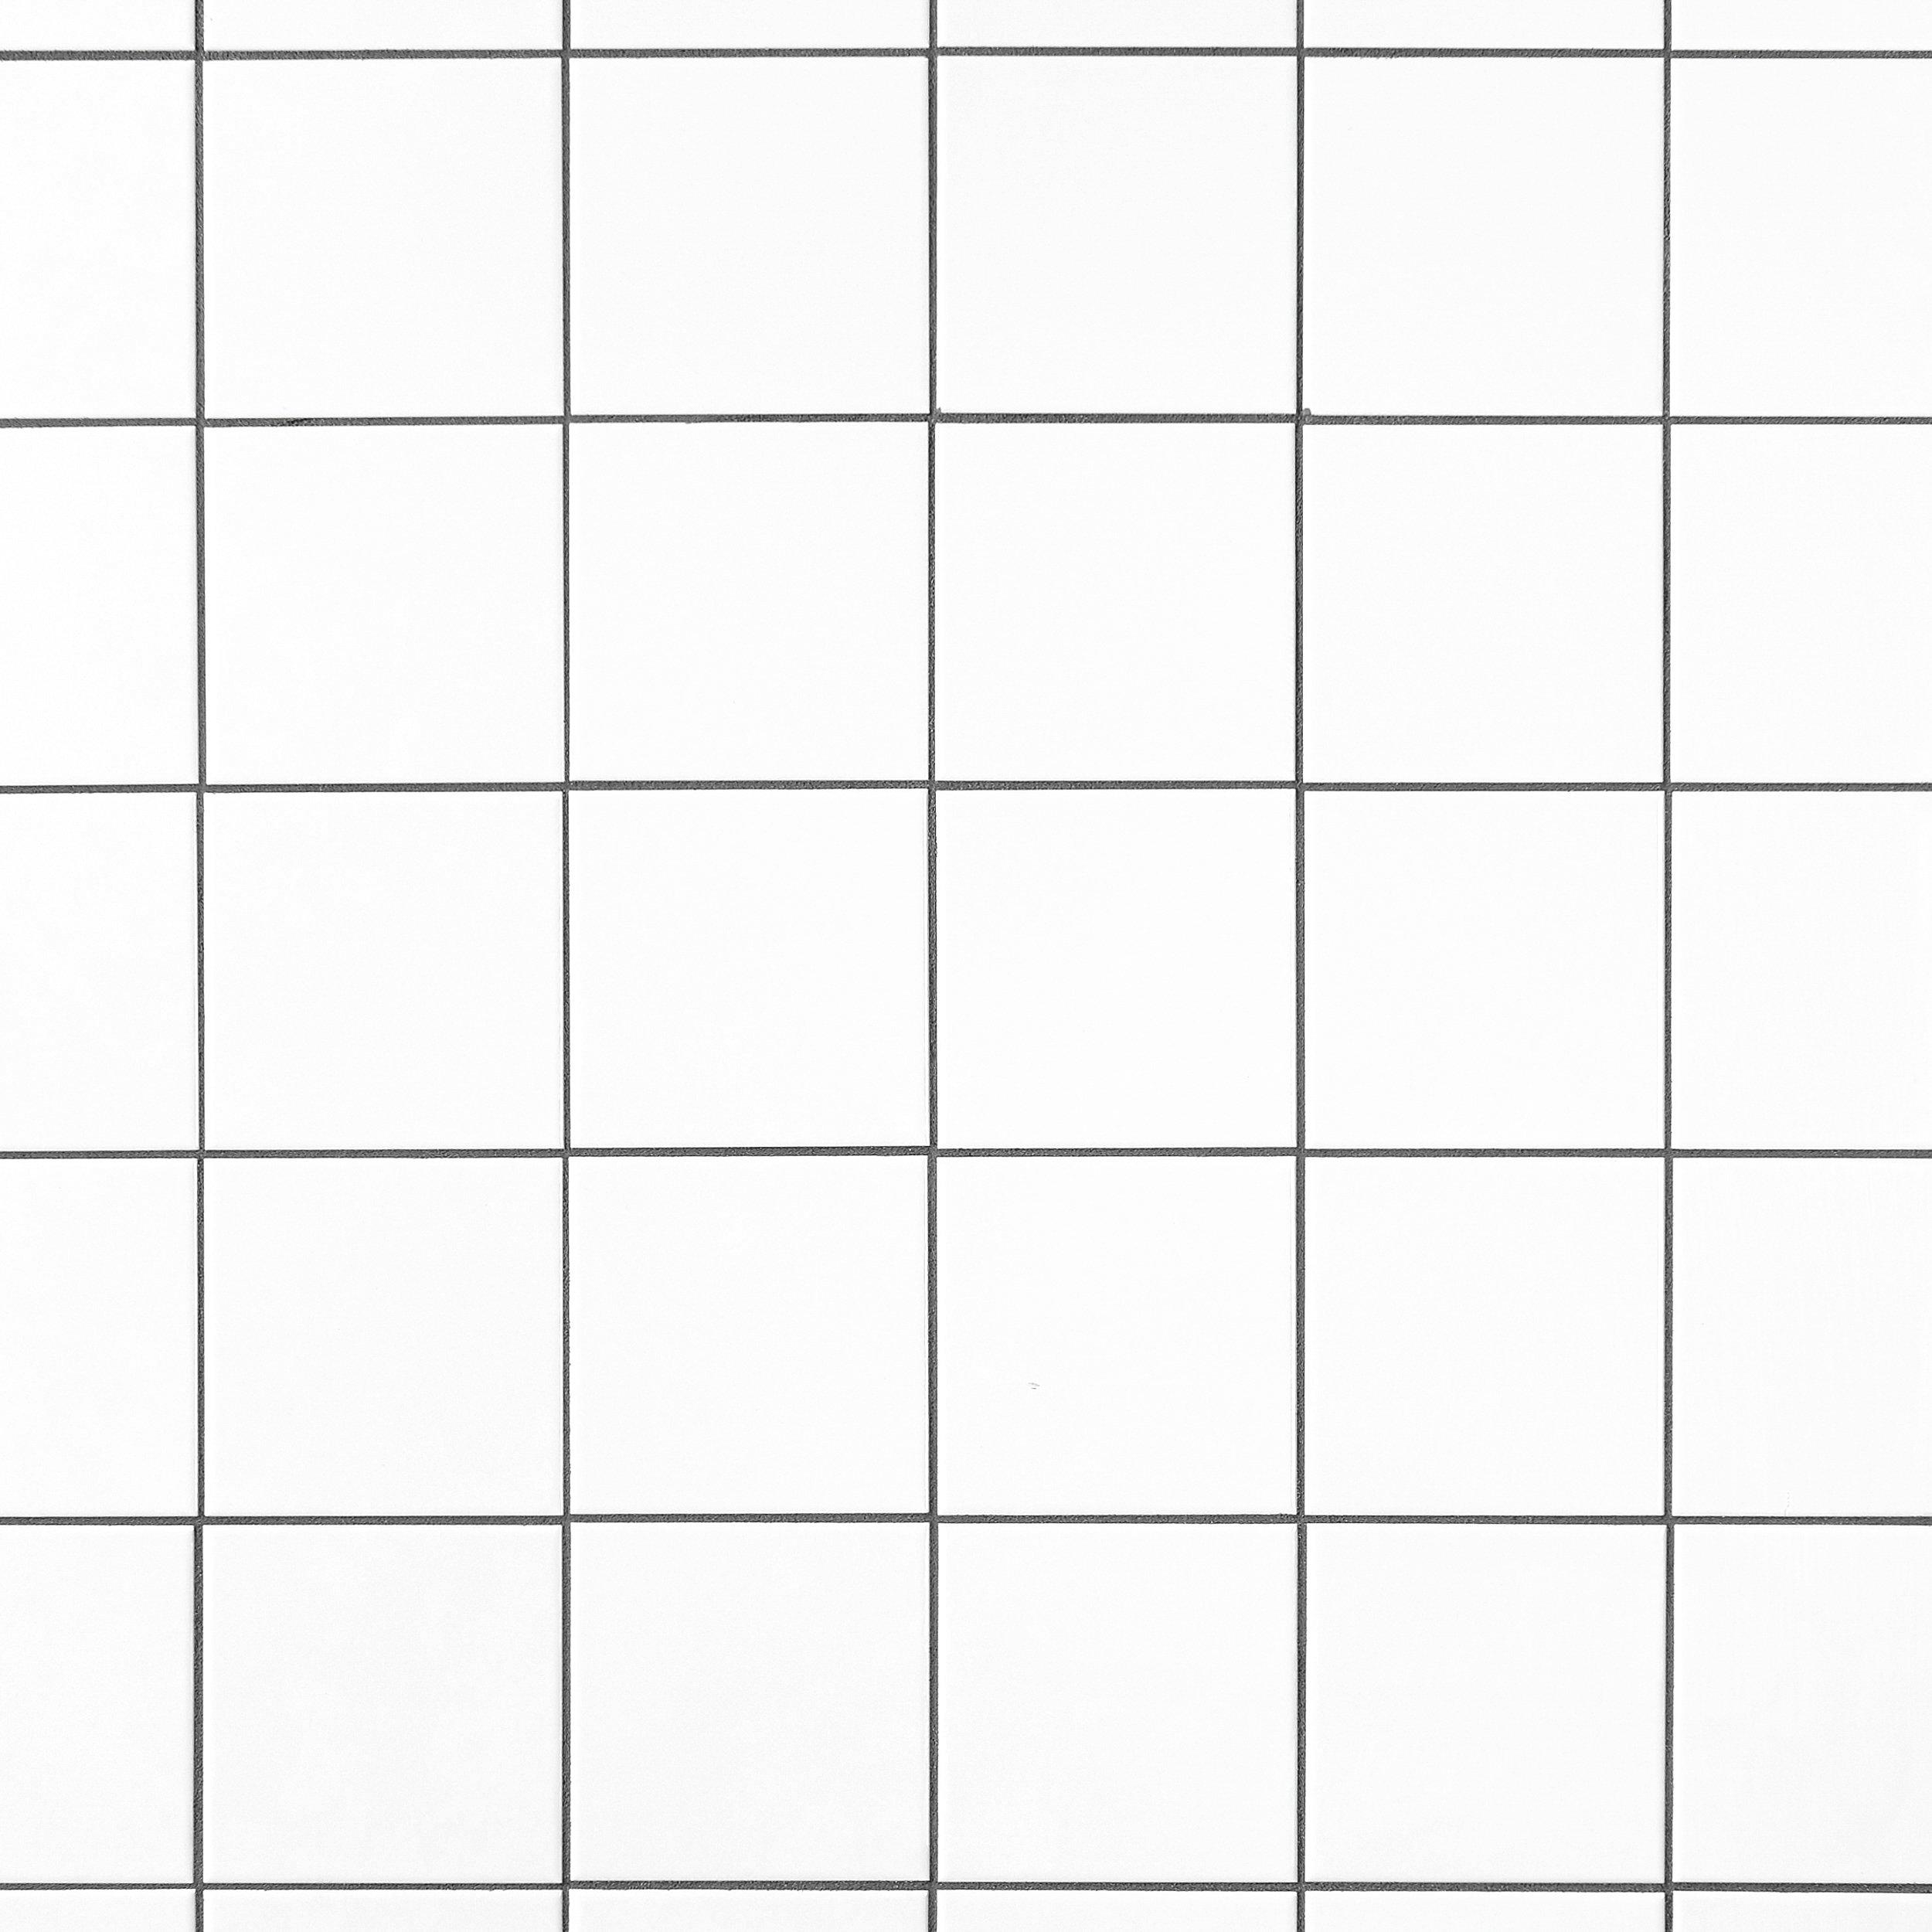 Bright White Ice Ceramic Wall Tile 6 x 6 914100889 Floor and